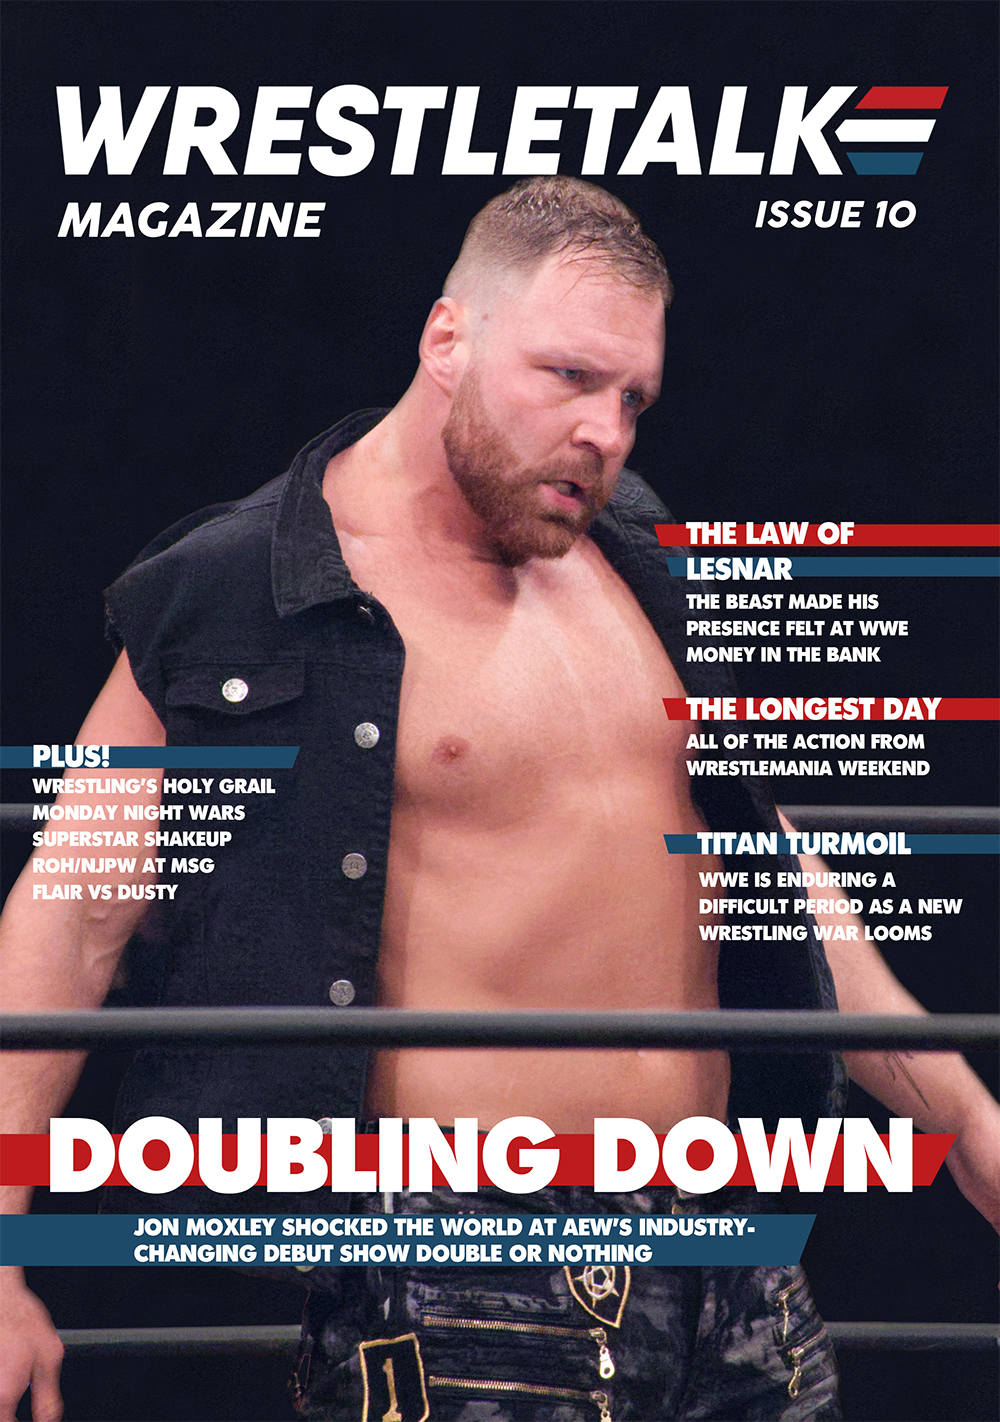 The front cover of Issue 10 of WrestleTalk Magazine, available from www.wrestletalk.com